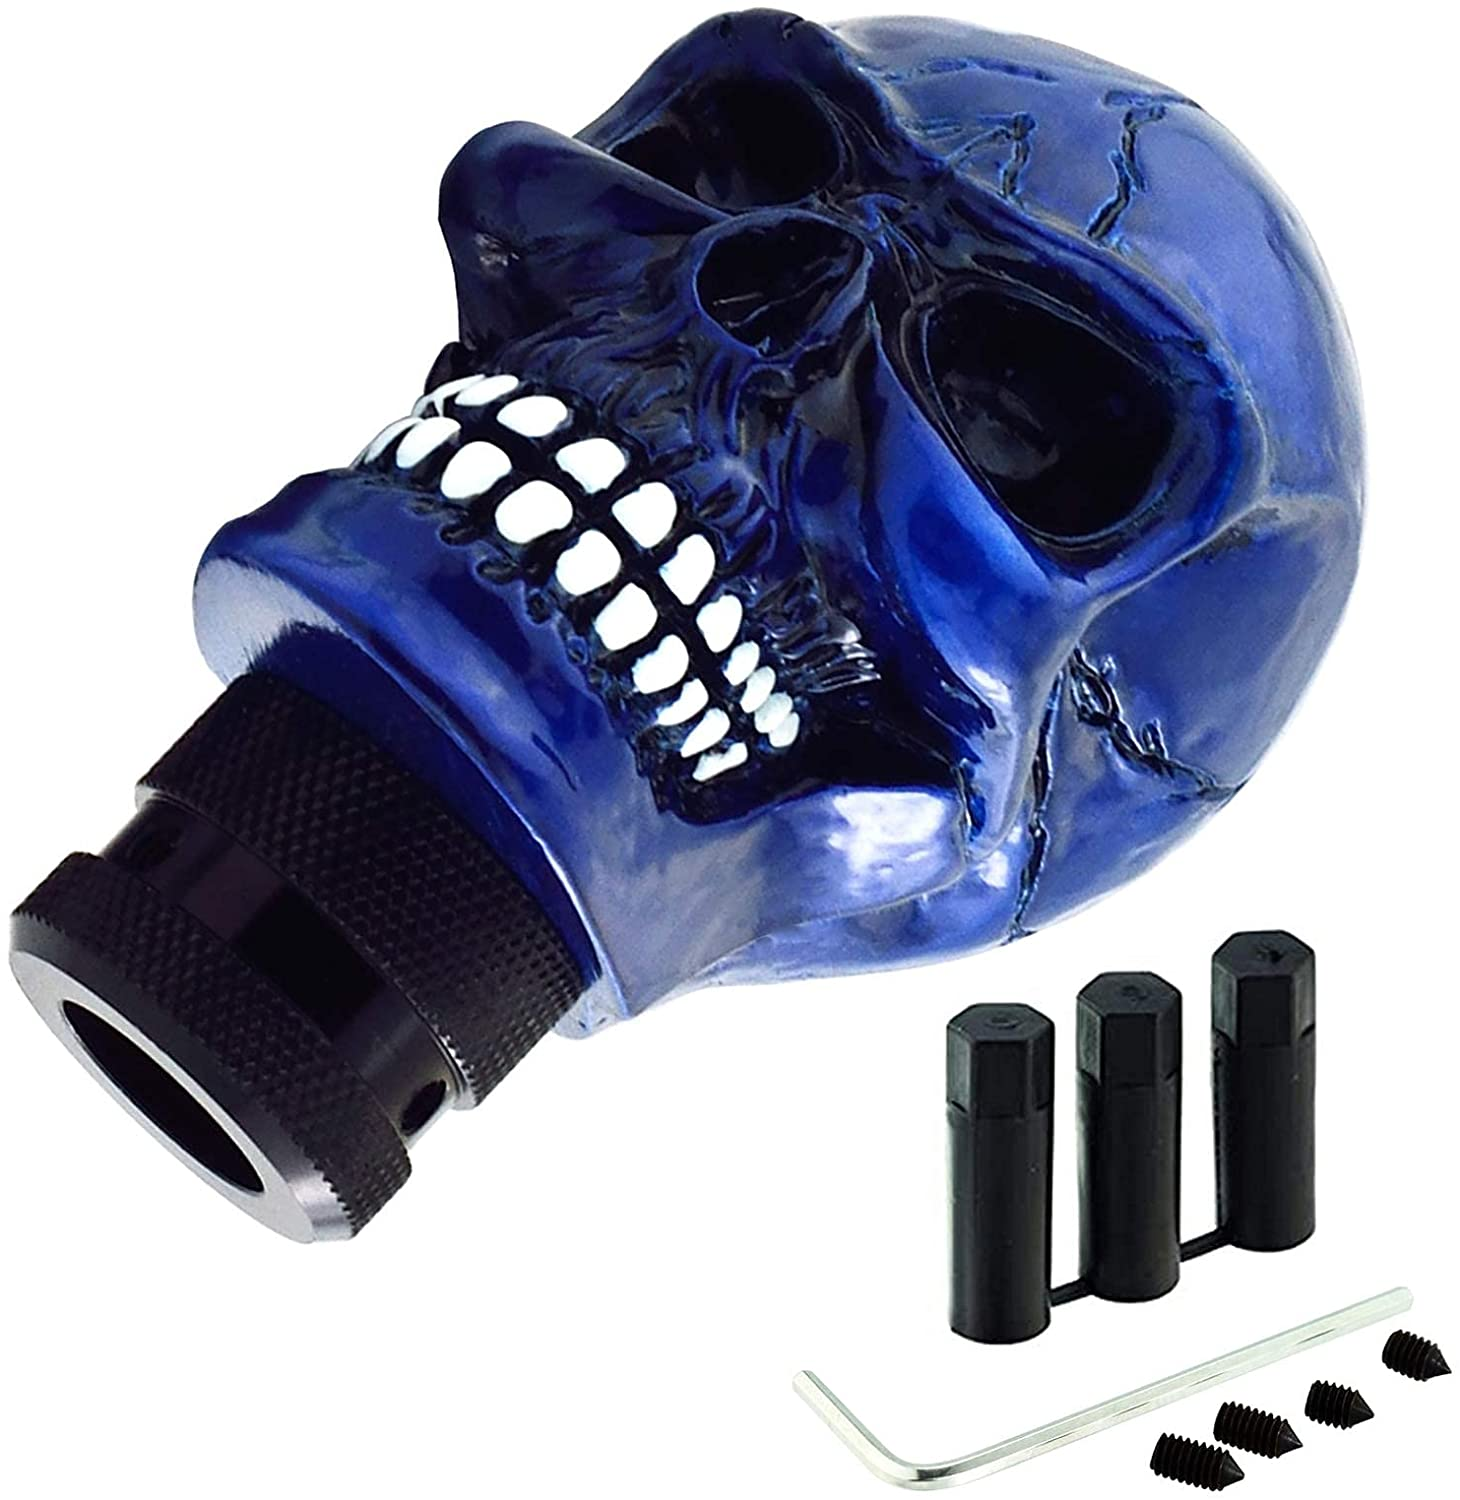 universal-skull-gear-shift-head-cool-style-stick-grip-lever-shifting-knob-for-all-cars-navy-blue